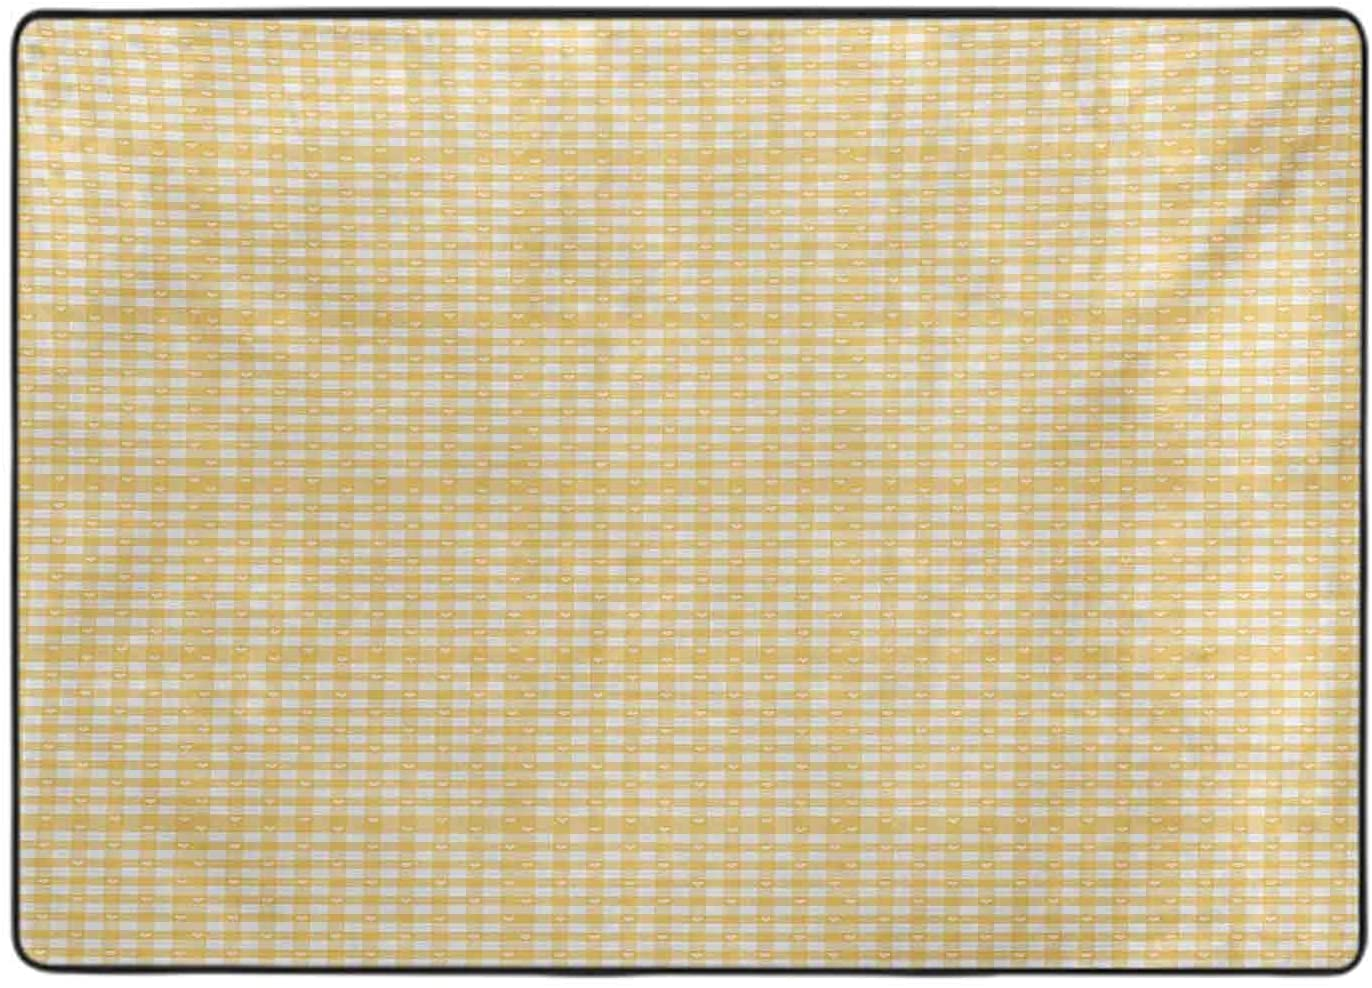 Collection Area Rug Gingham Pattern 2021 spring and summer new with Under blast sales Squa Checkered Bicolor